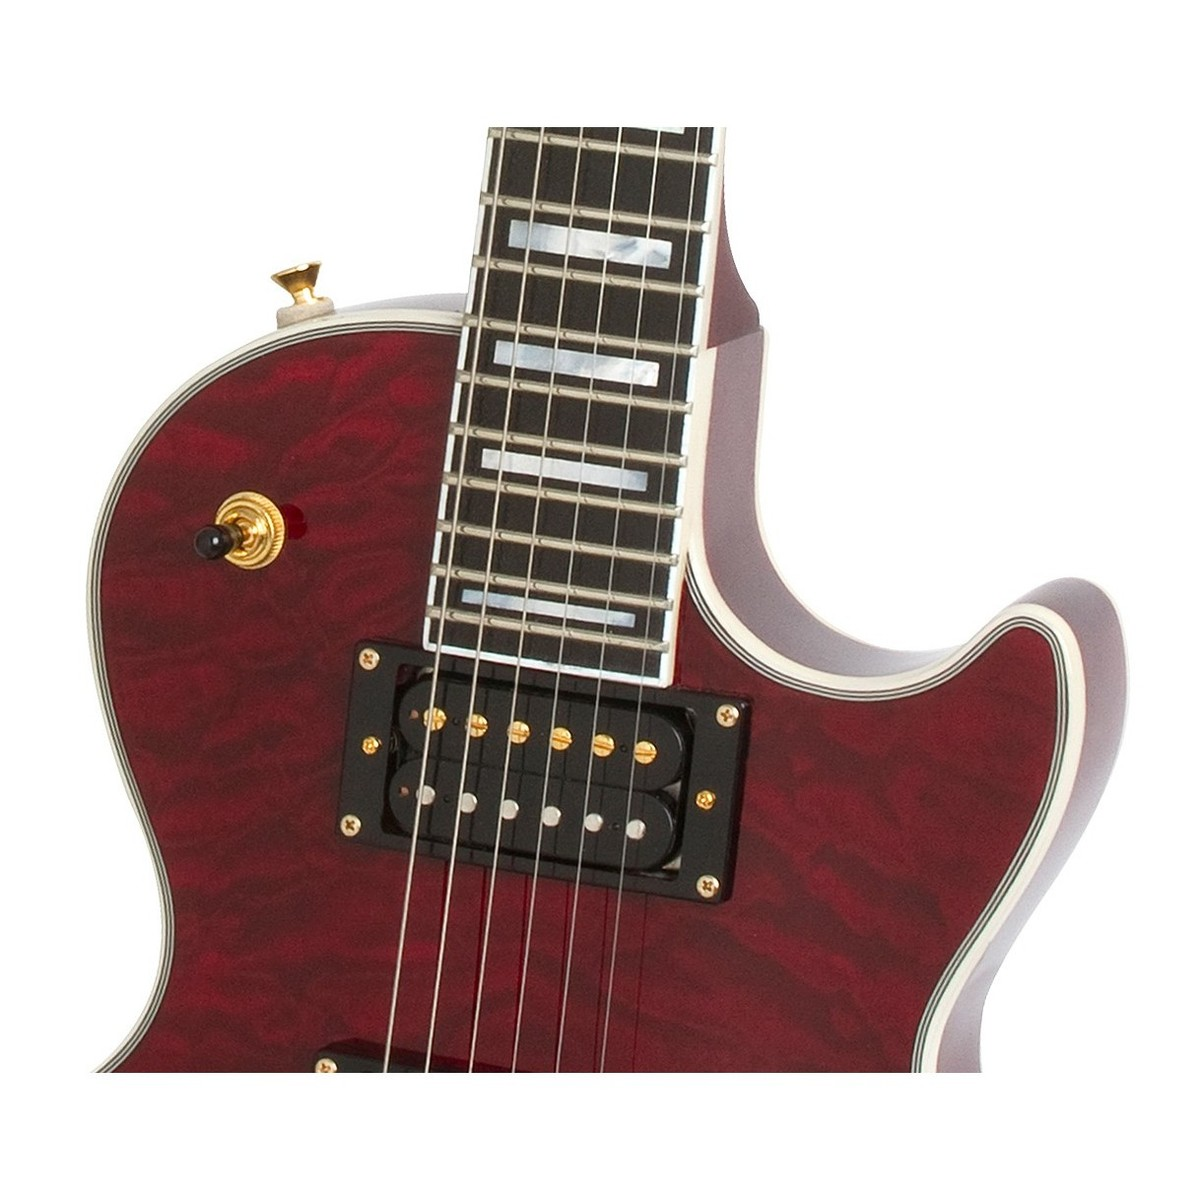 Wiring Diagram Epiphone Les Paul Prophecy Ex Library Ii Custom Plus Gx Black Cherry Loading Zoom